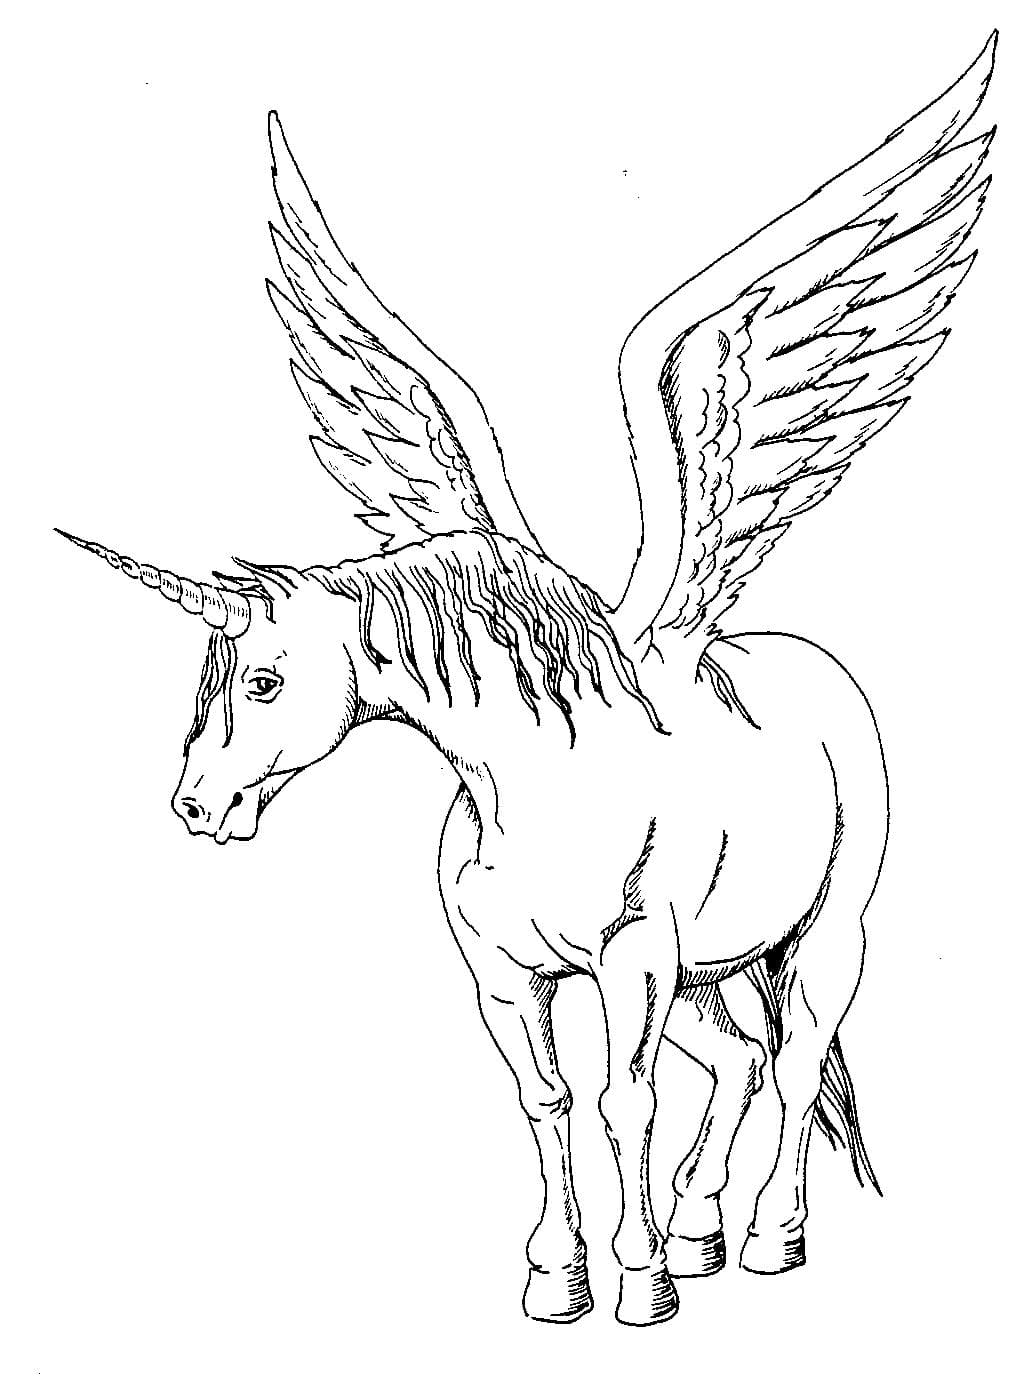 Psalm 100 kjv coloring pages ~ Coloring Pages Of Unicorns To Print : Coloring Pages ...